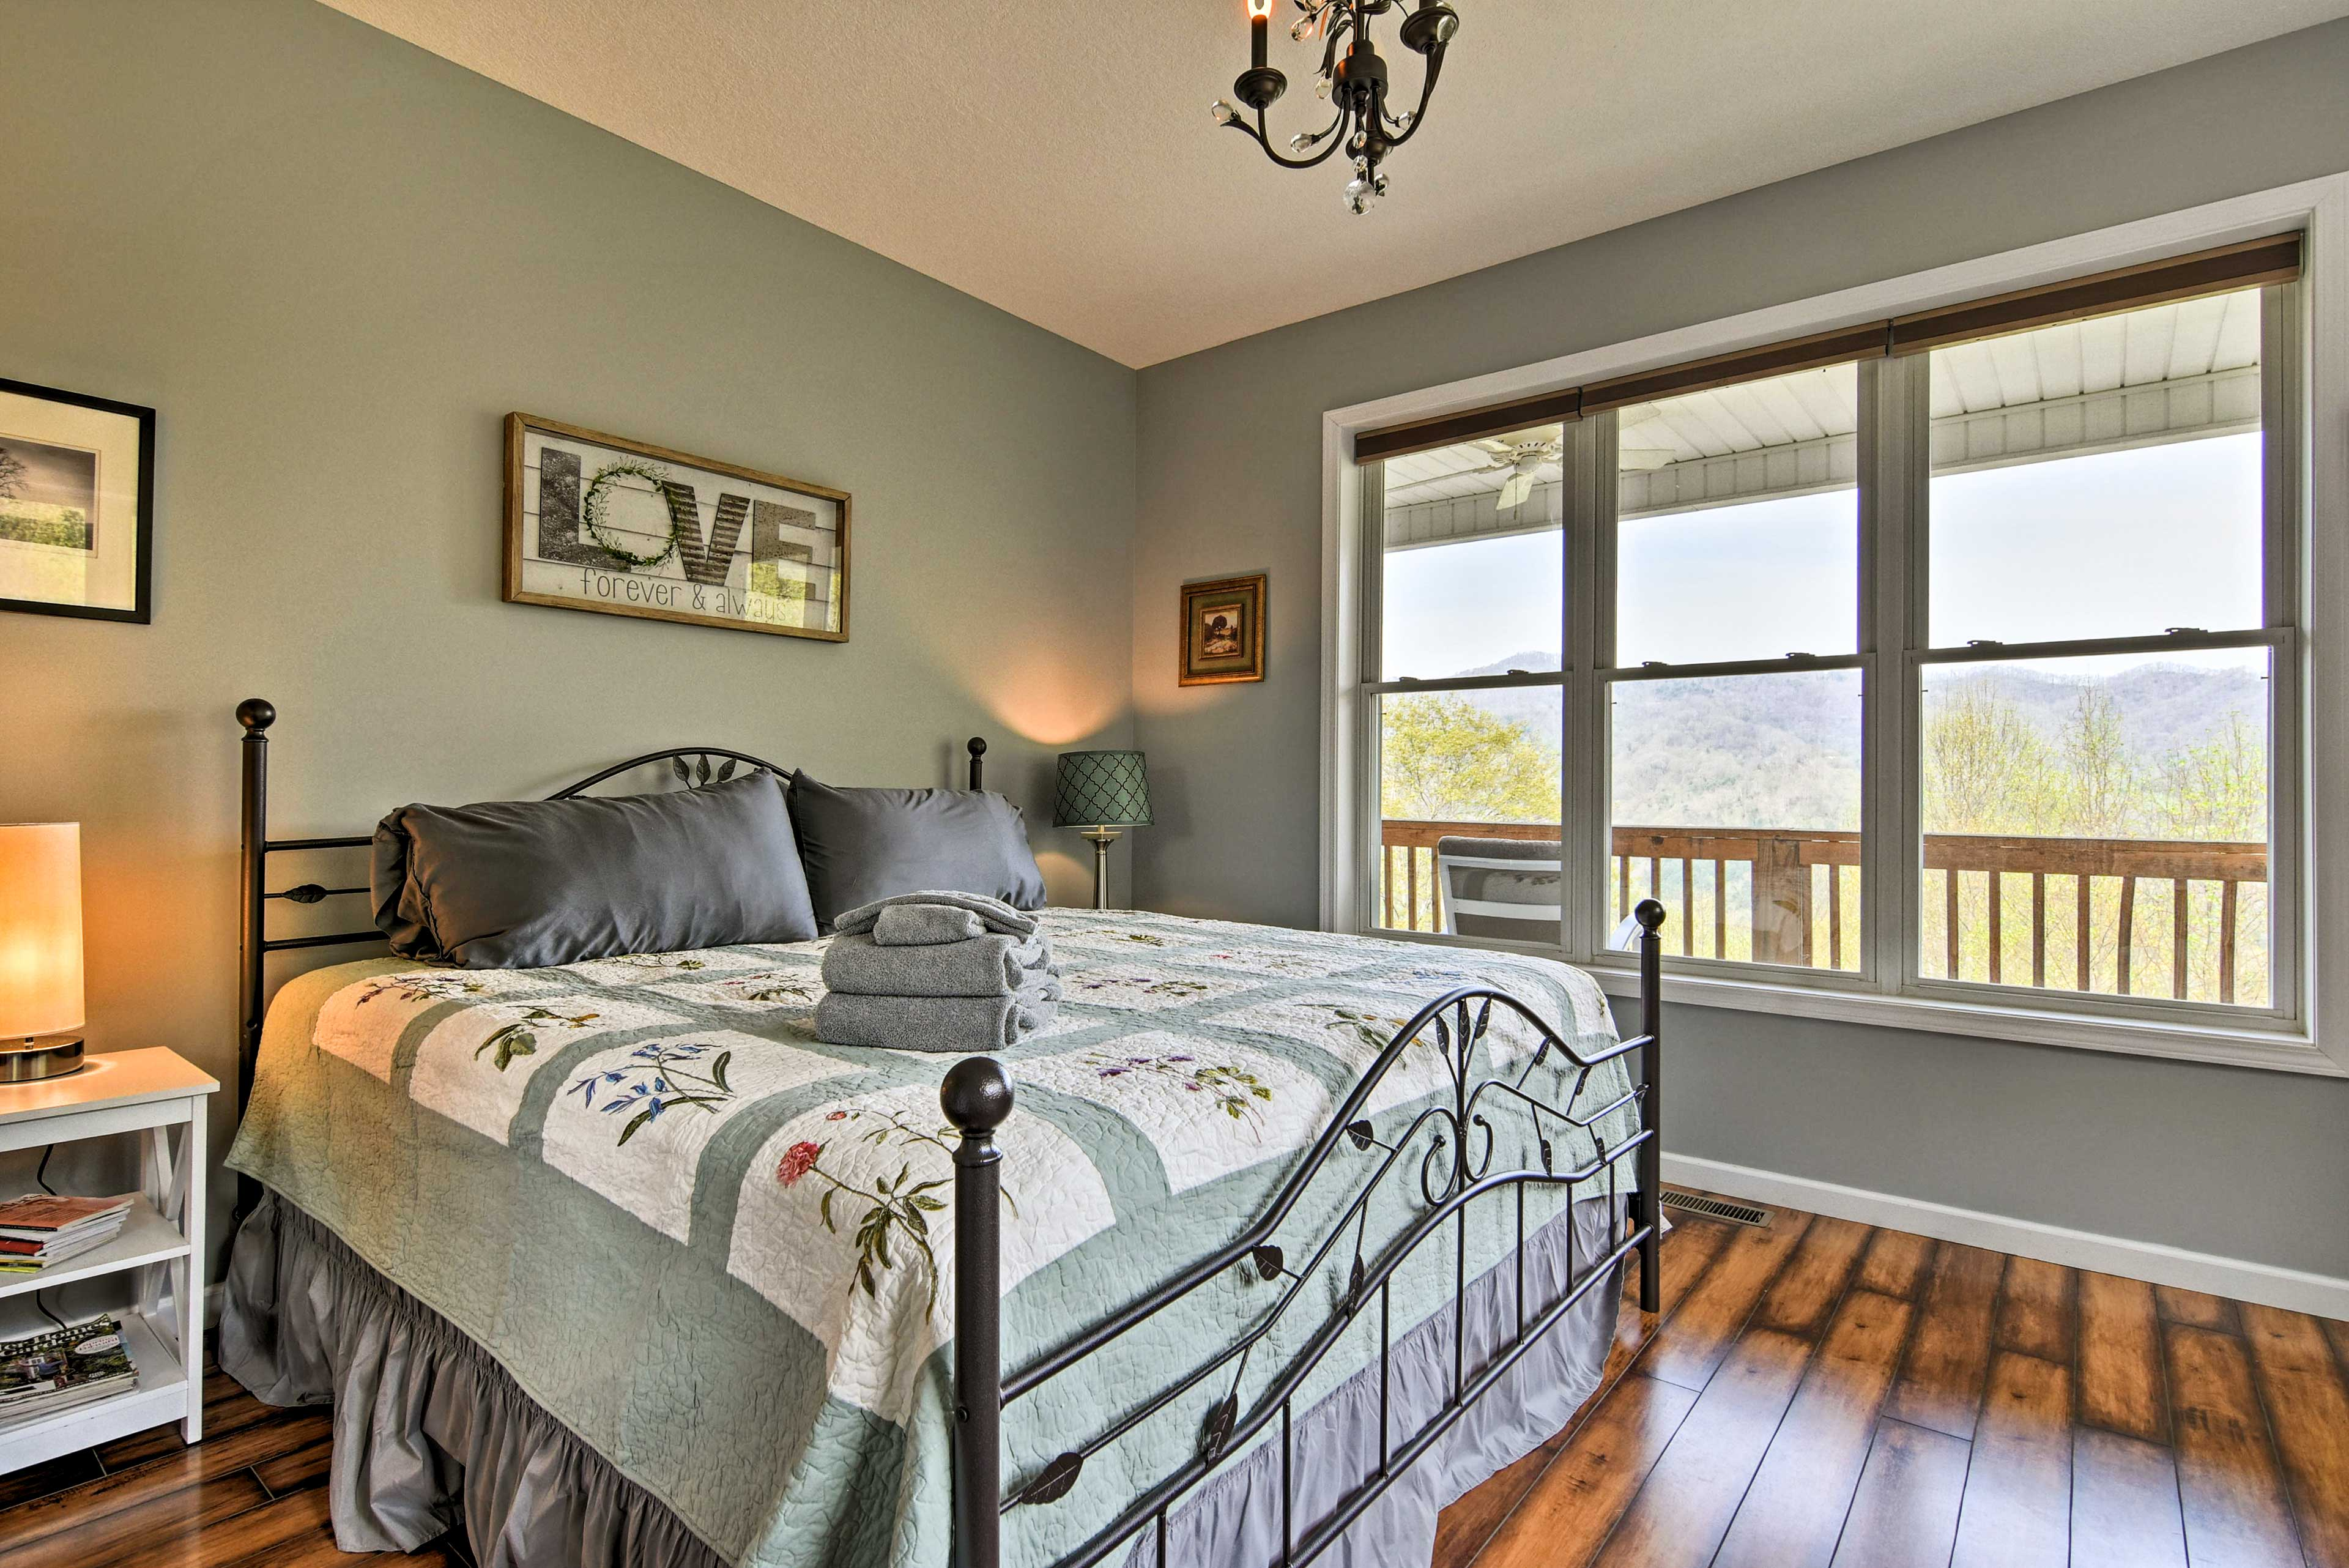 You'll feel right at home in this well-appointed bedroom.